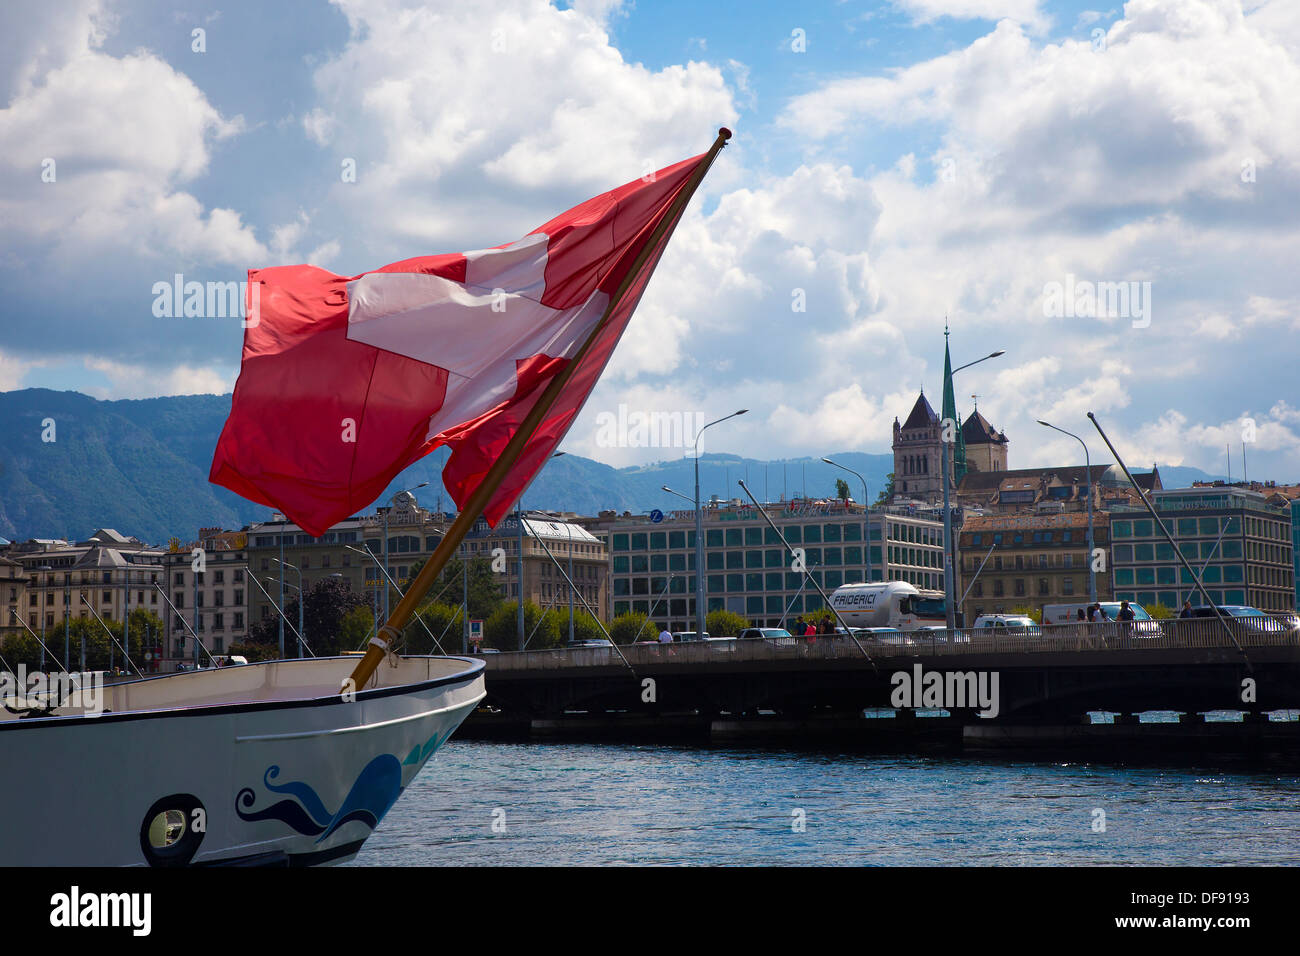 Swiss flag flying from a boat in Lake Geneva with the city in the background - Stock Image